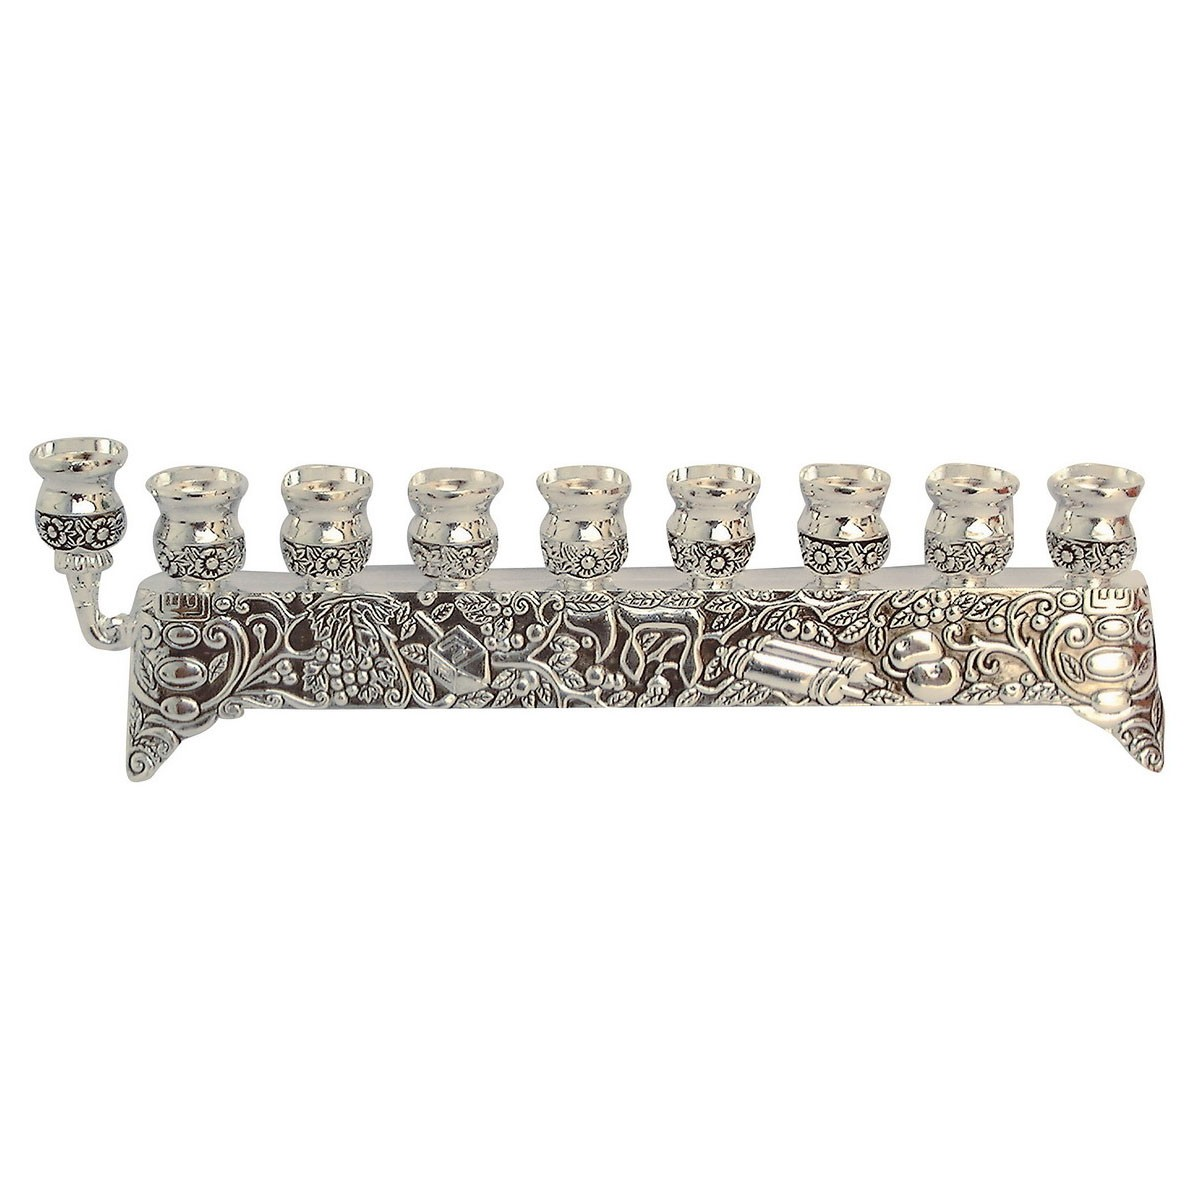 Silver-Plated Hanukkah Bar Menorah with Extended Shamash